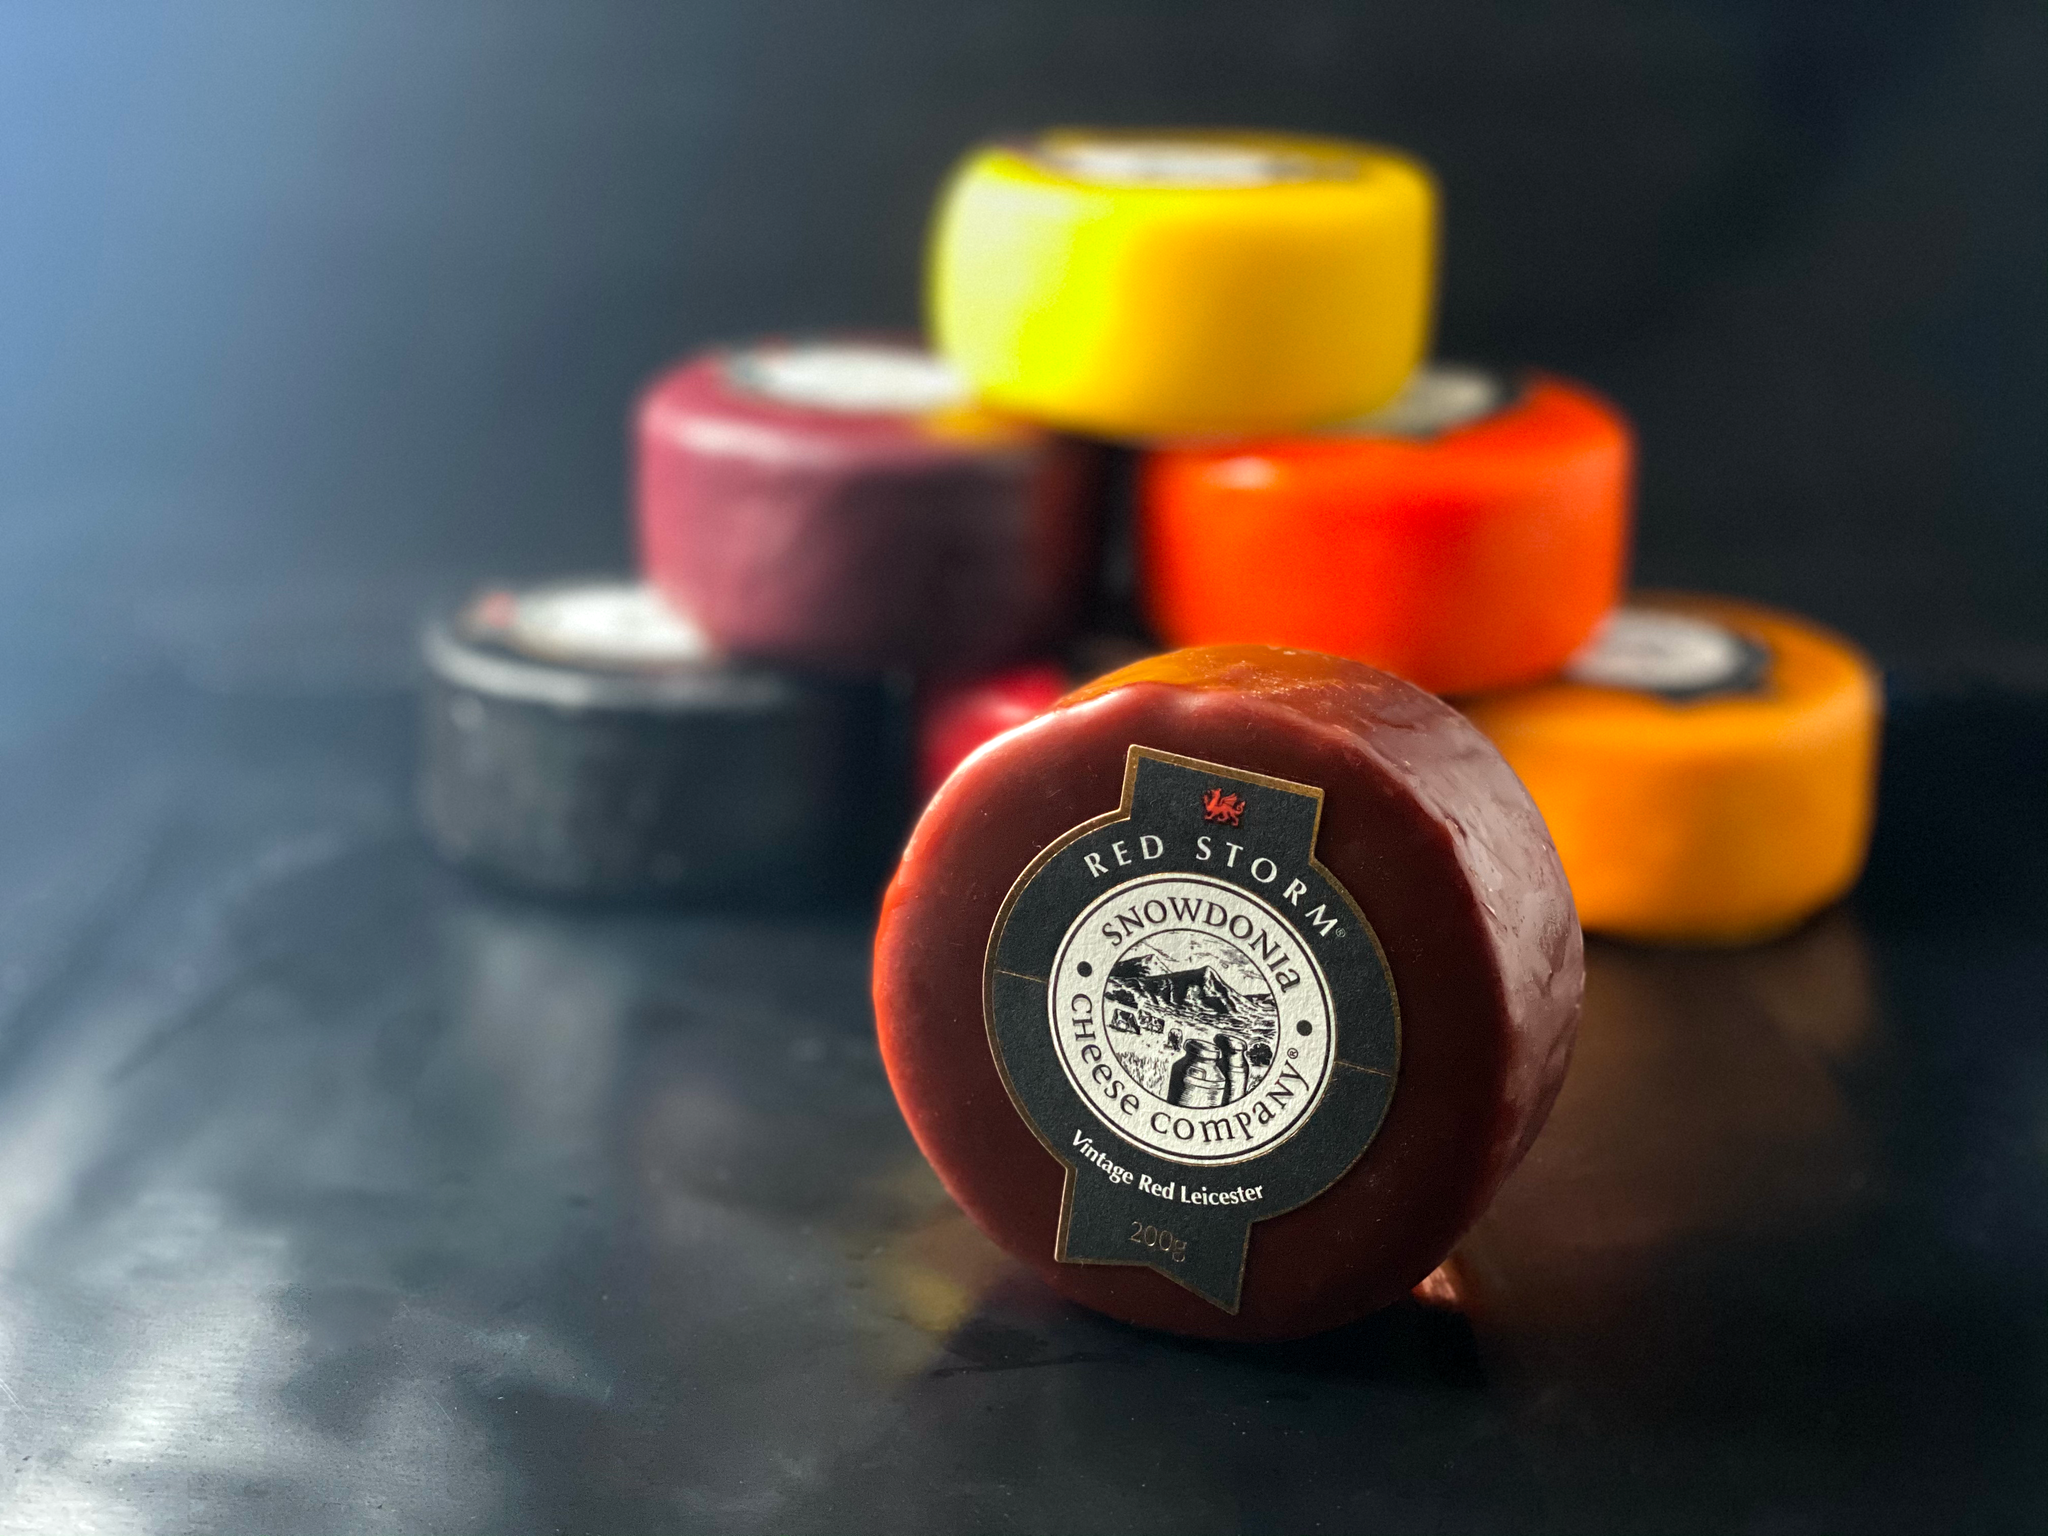 Matthews Cheese: Red Storm - Snowdonia Truckles